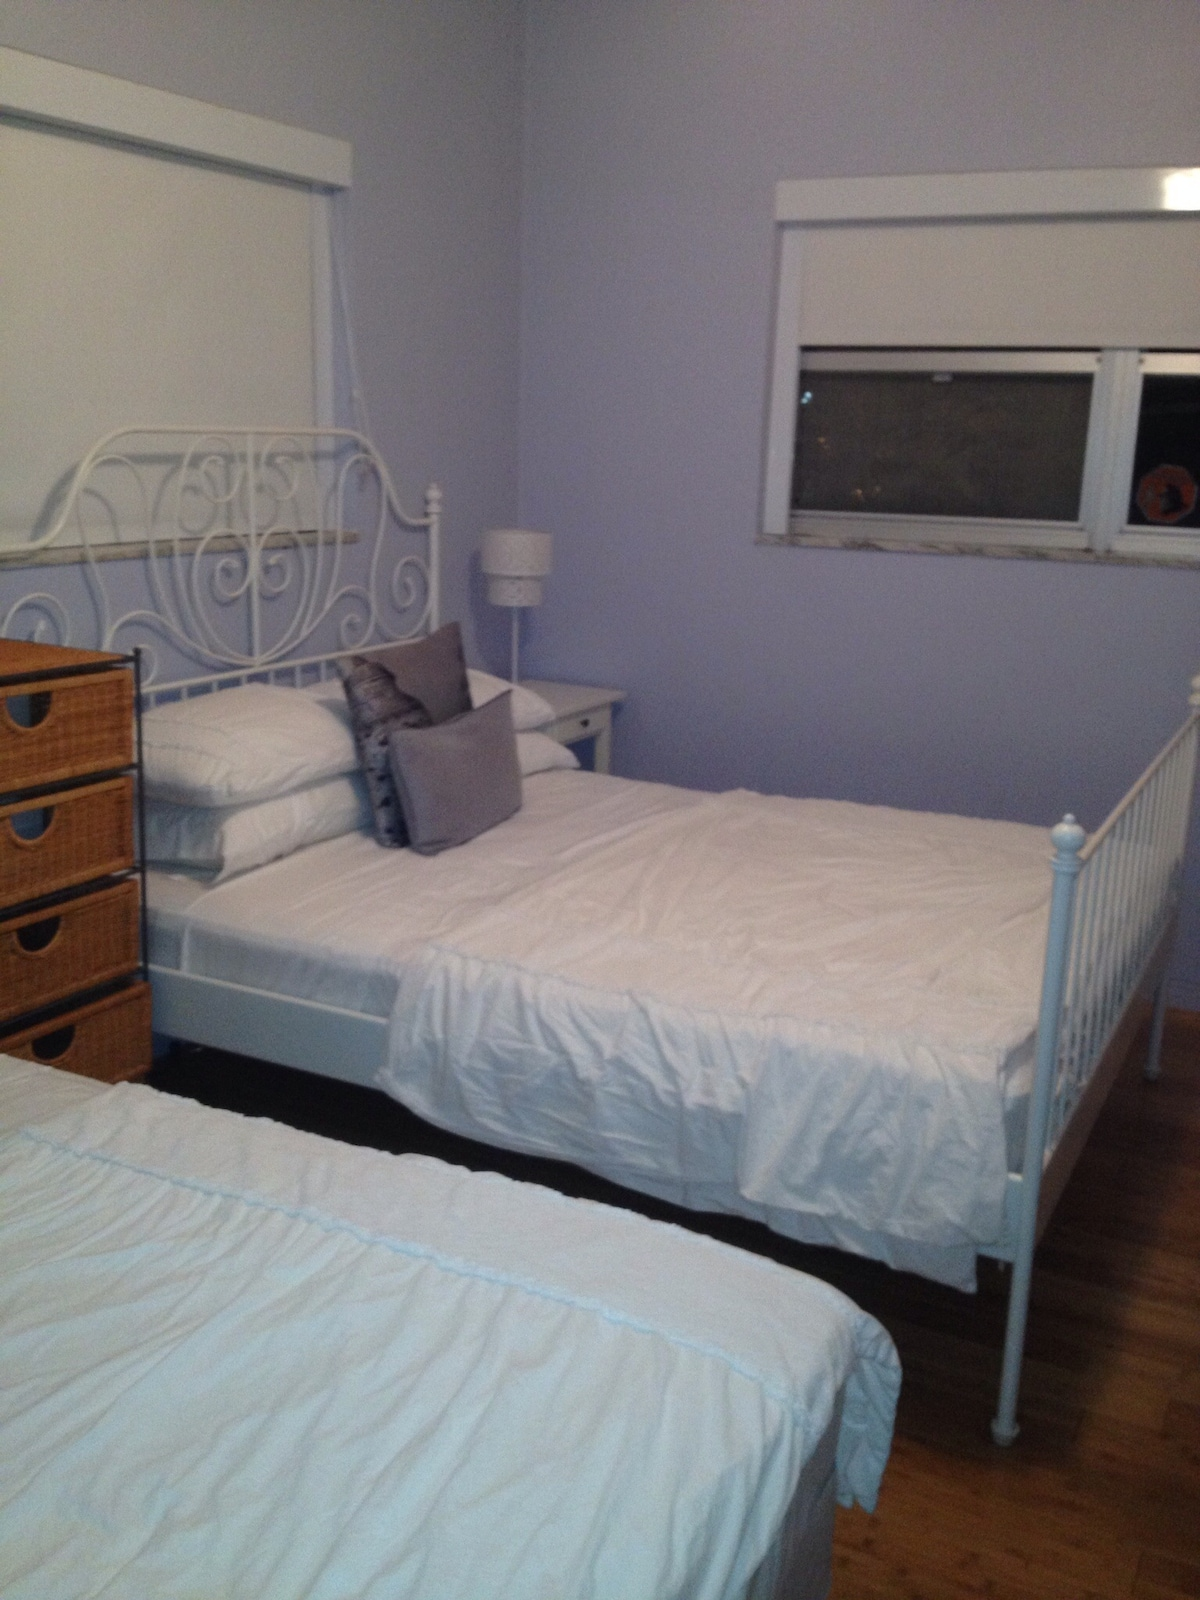 Other view of two double beds